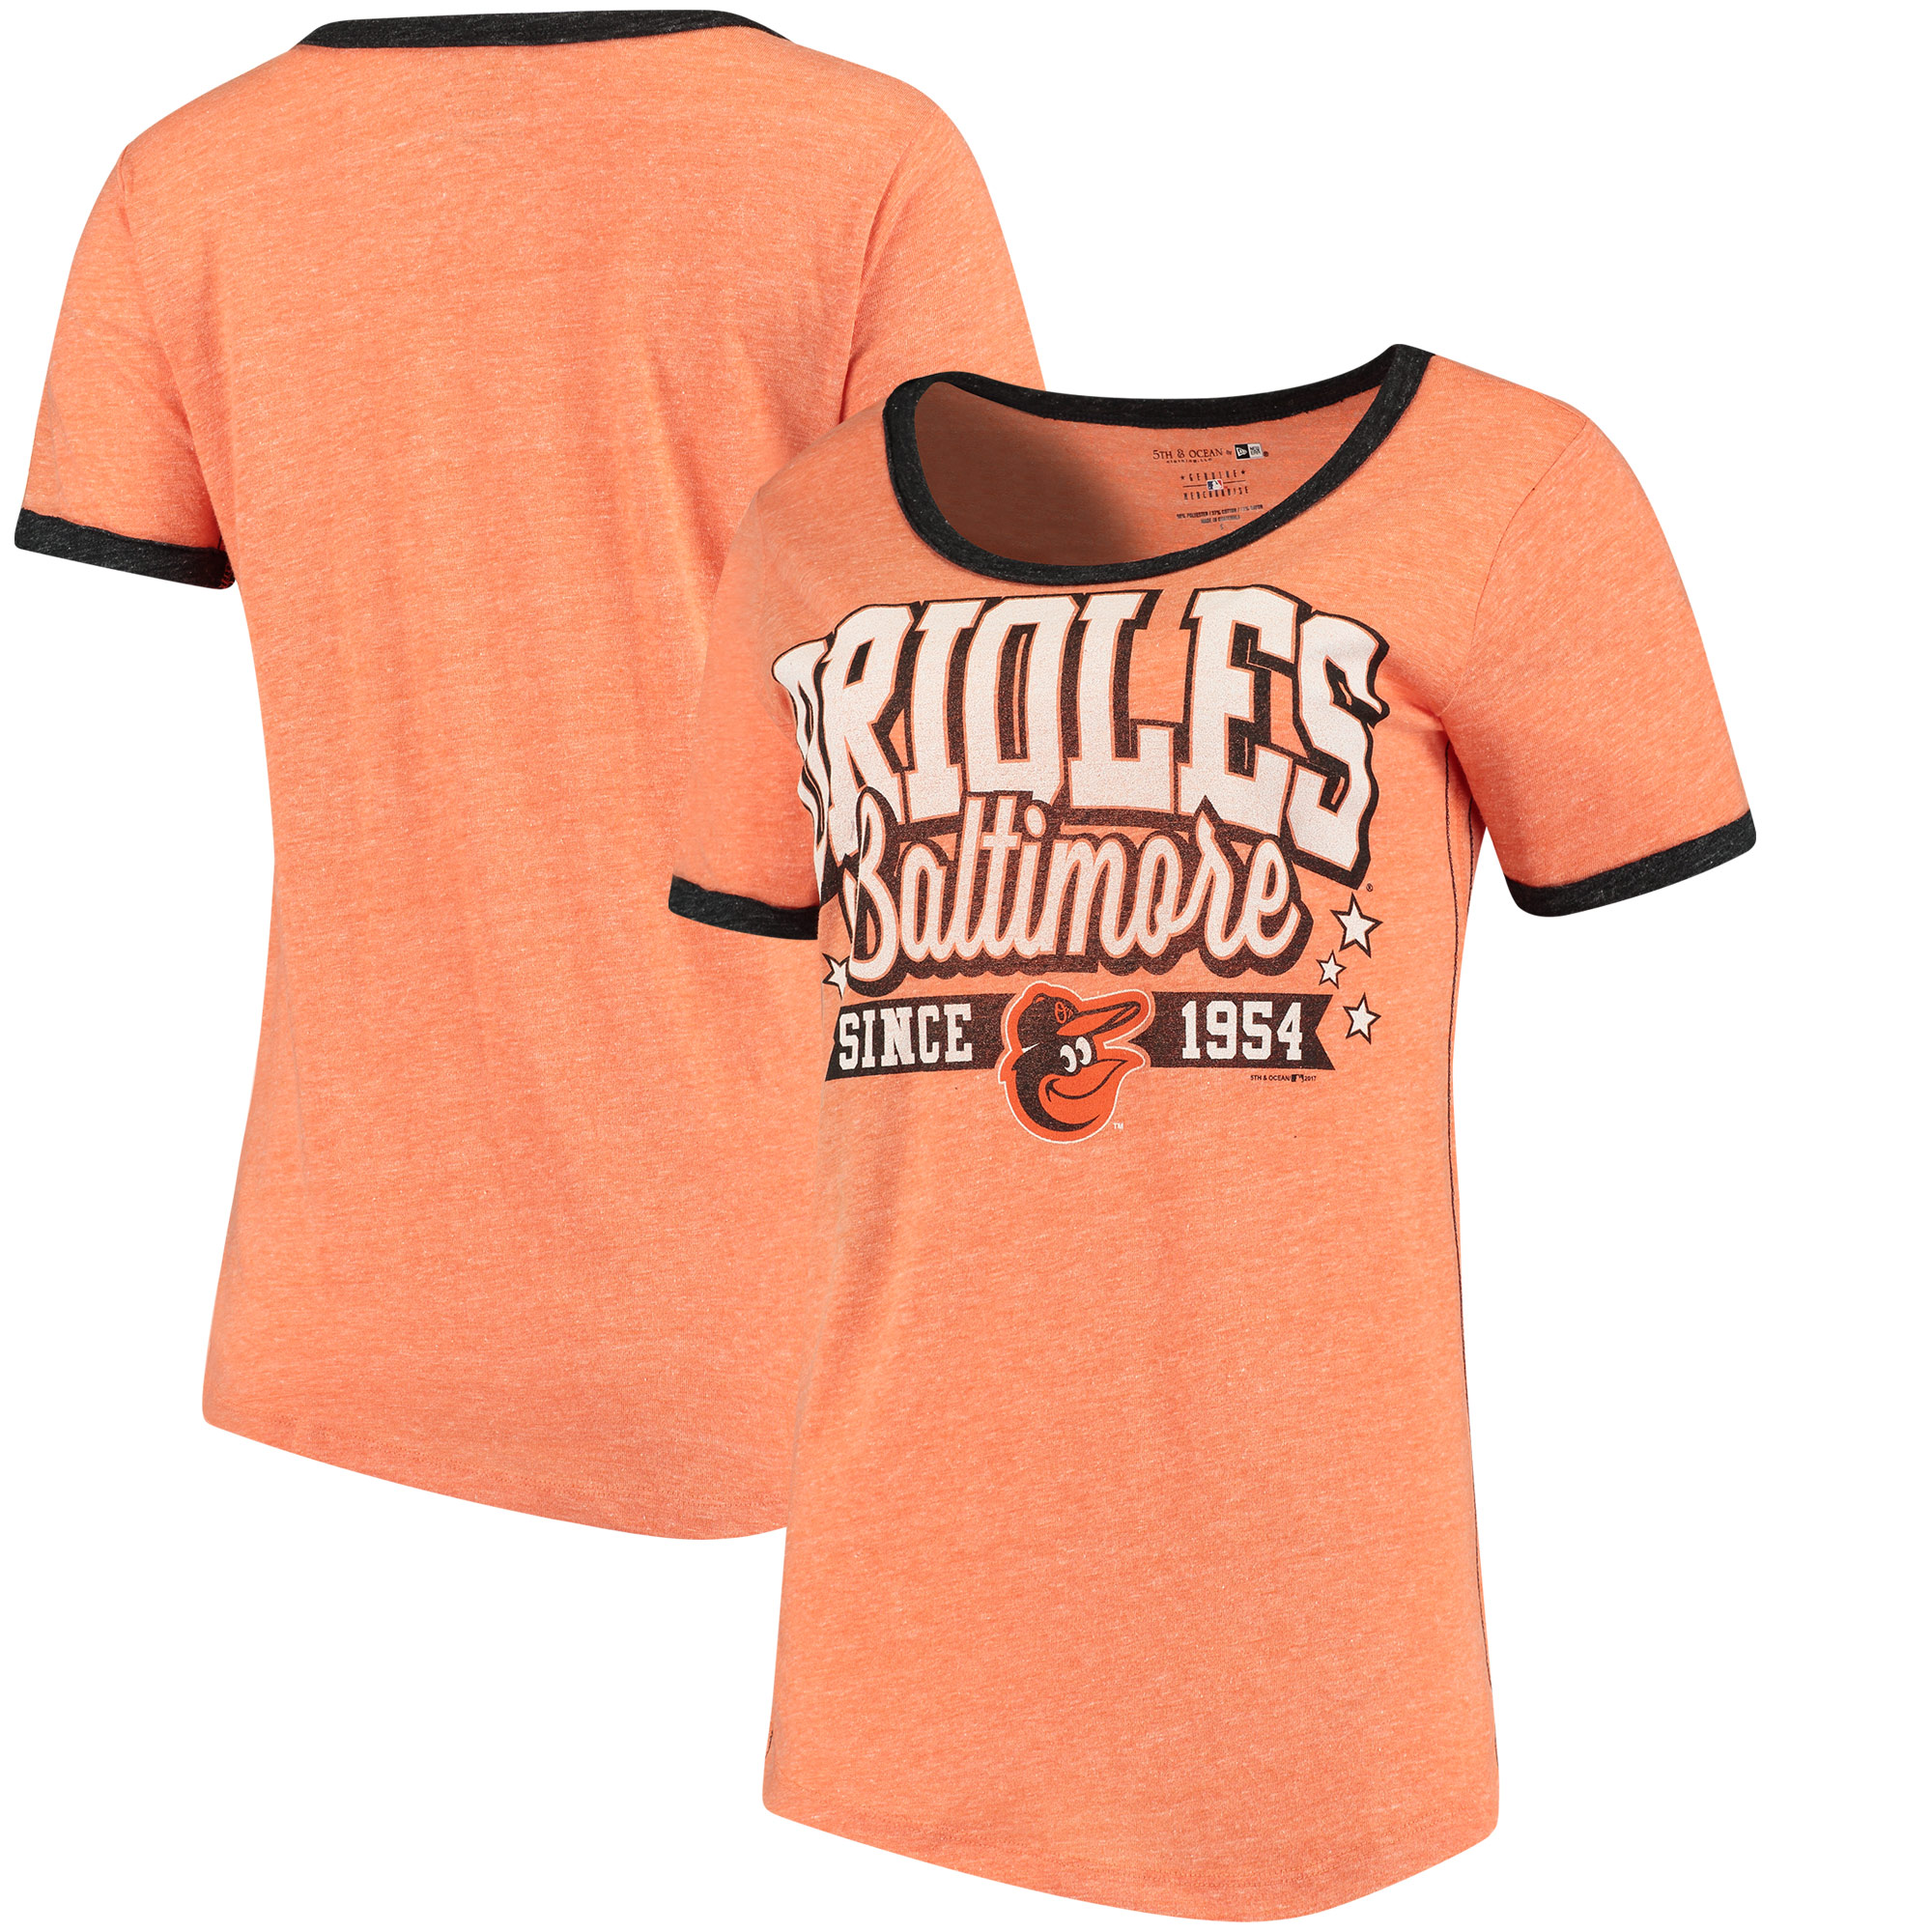 Baltimore Orioles 5th & Ocean by New Era Women's Jersey Ringer Tri-Blend T-Shirt - Orange/Black